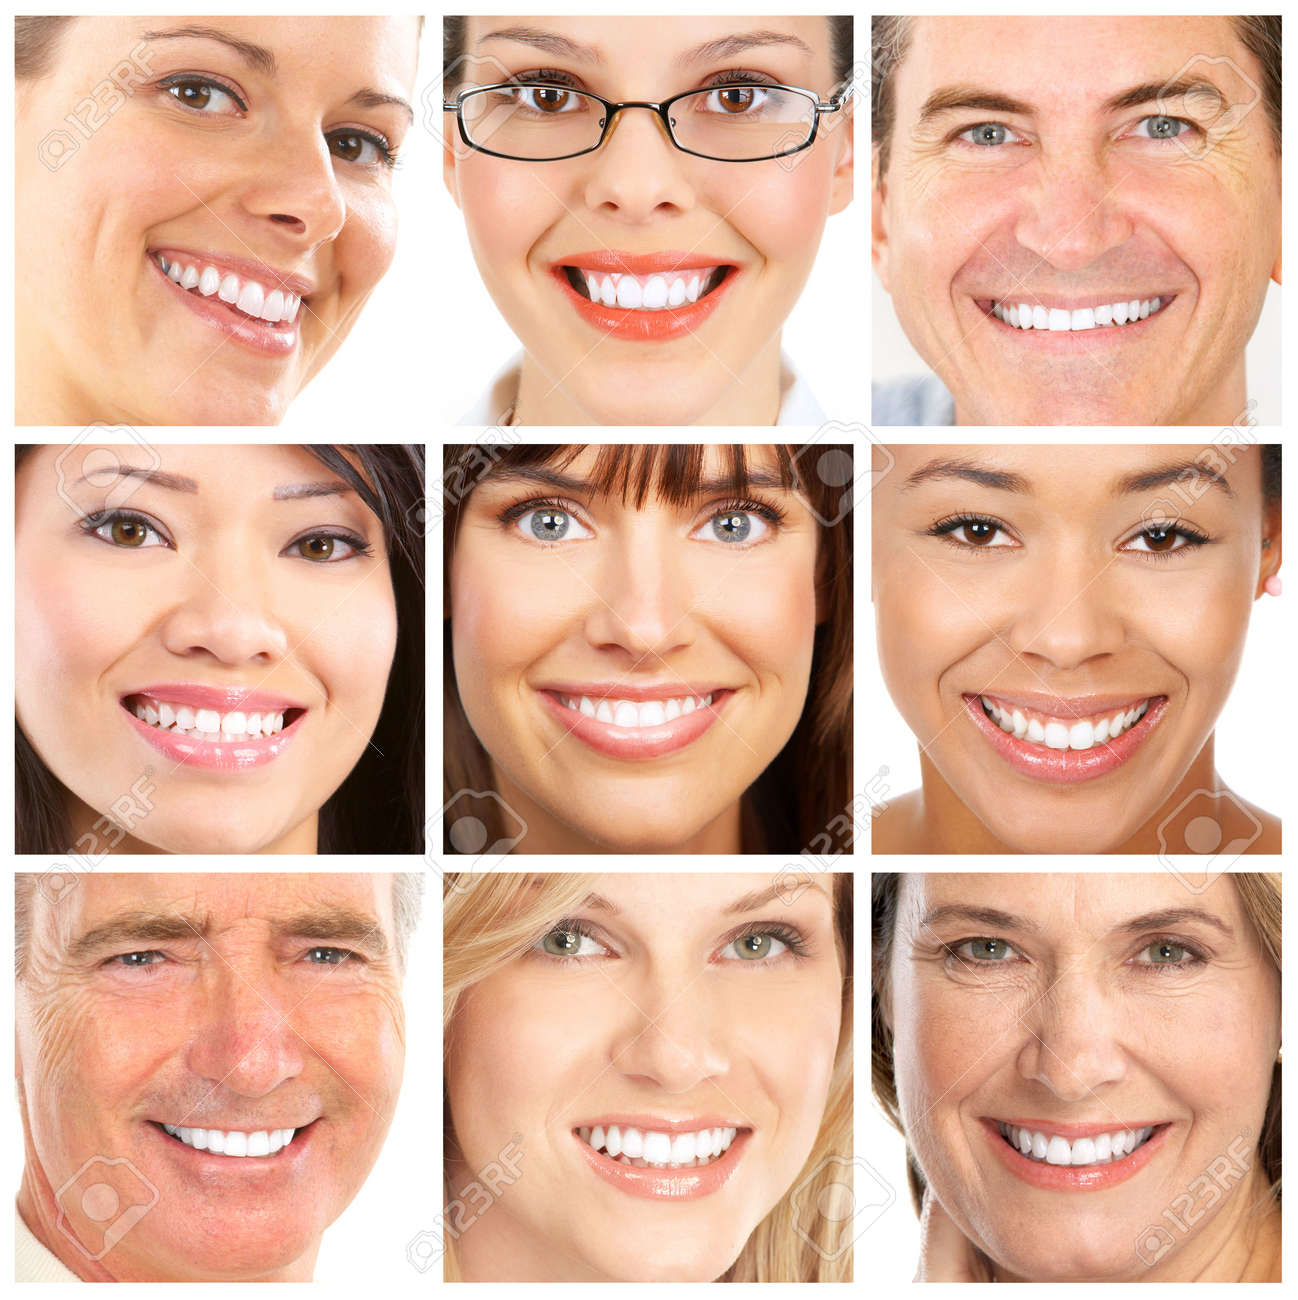 faces of smiling people healthy teeth smile stock photo picture